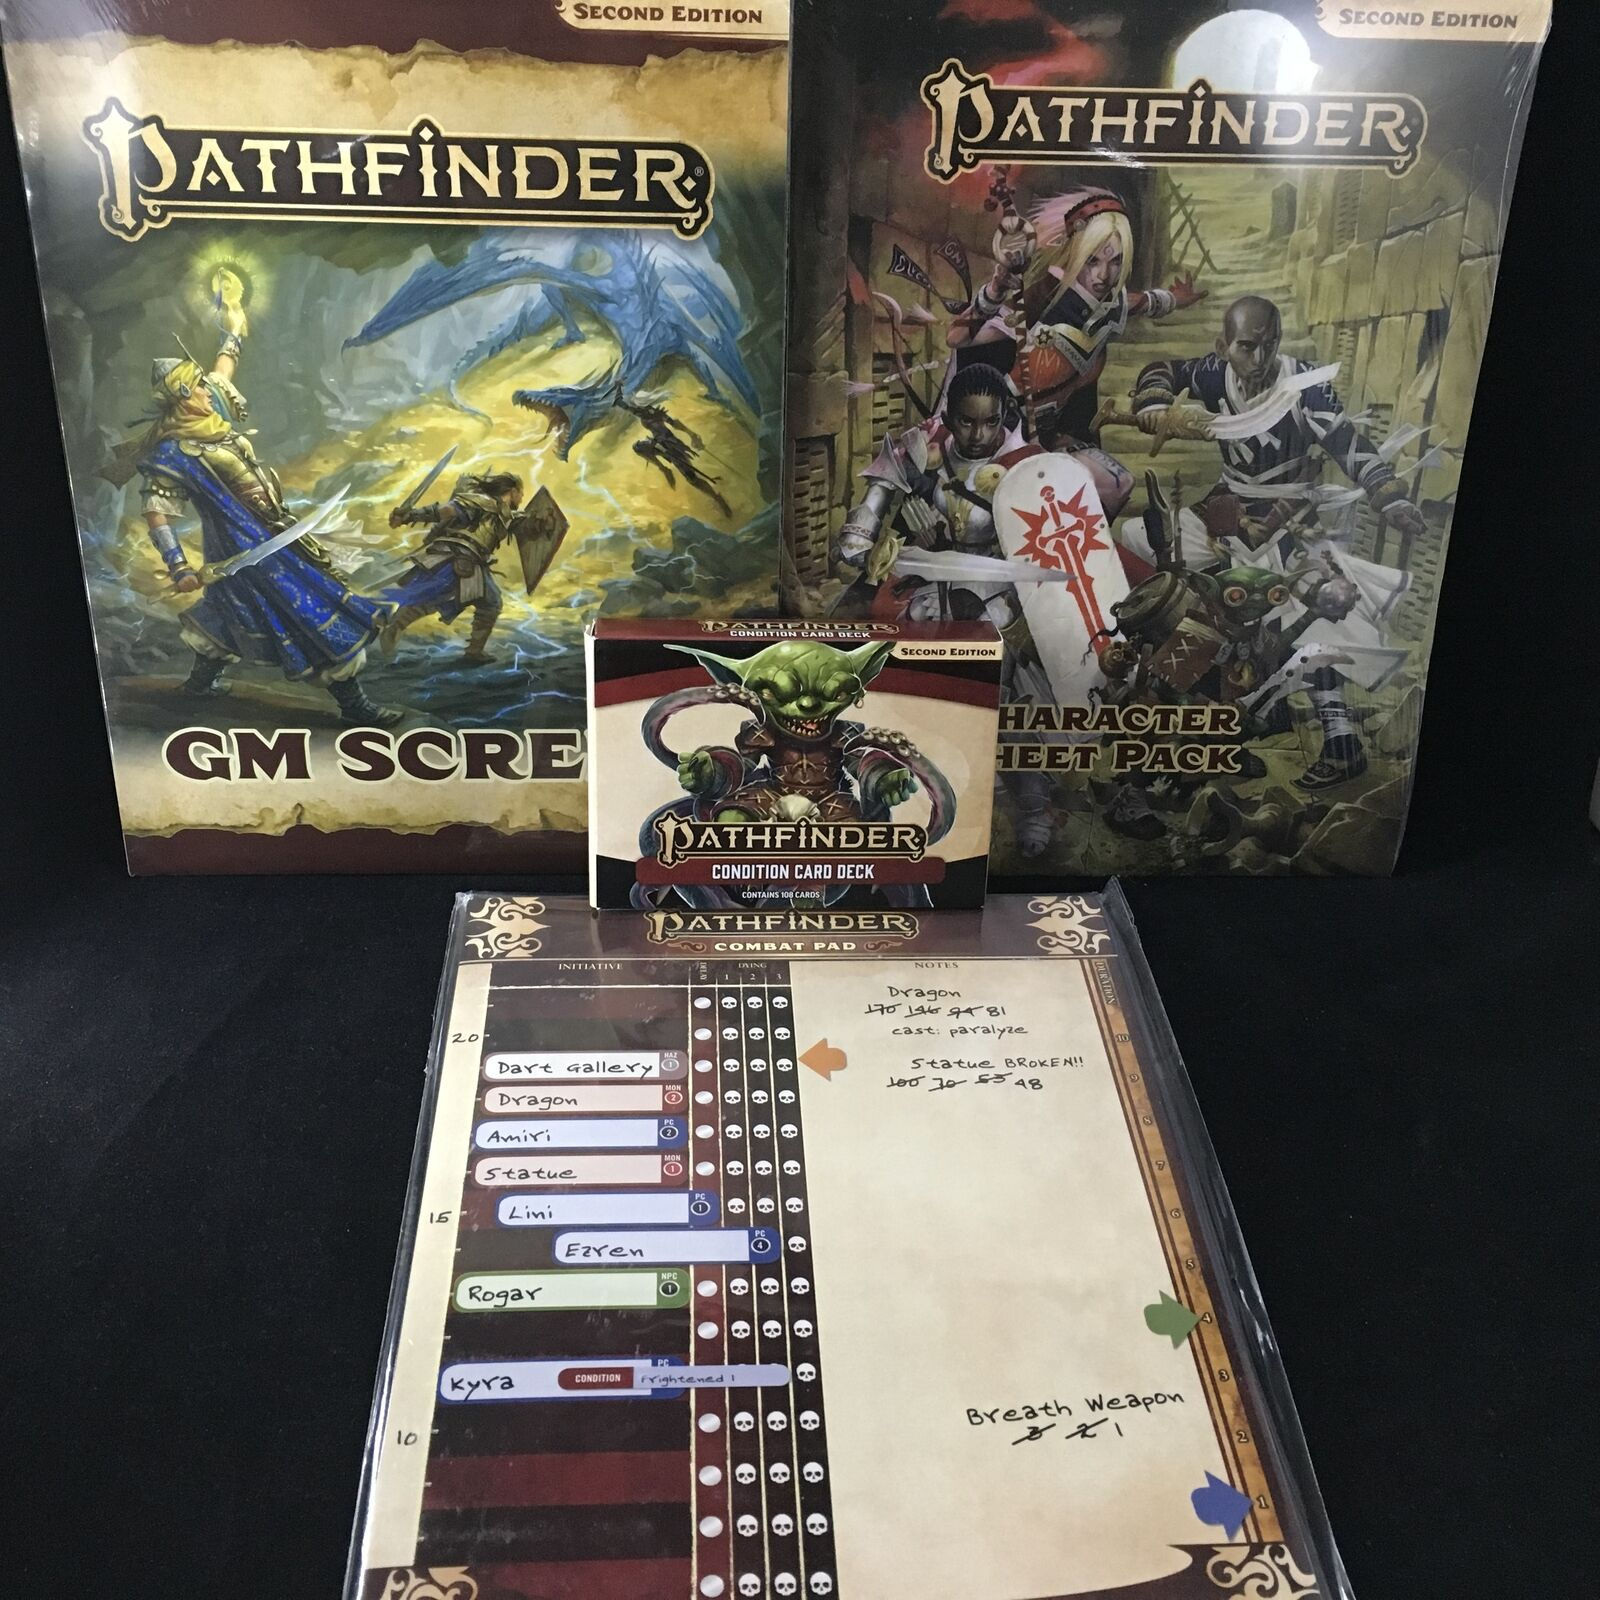 PATHFINDER RPG 2E  GM Screen, Character Sheets, Condition Cards, & Combat Pad...